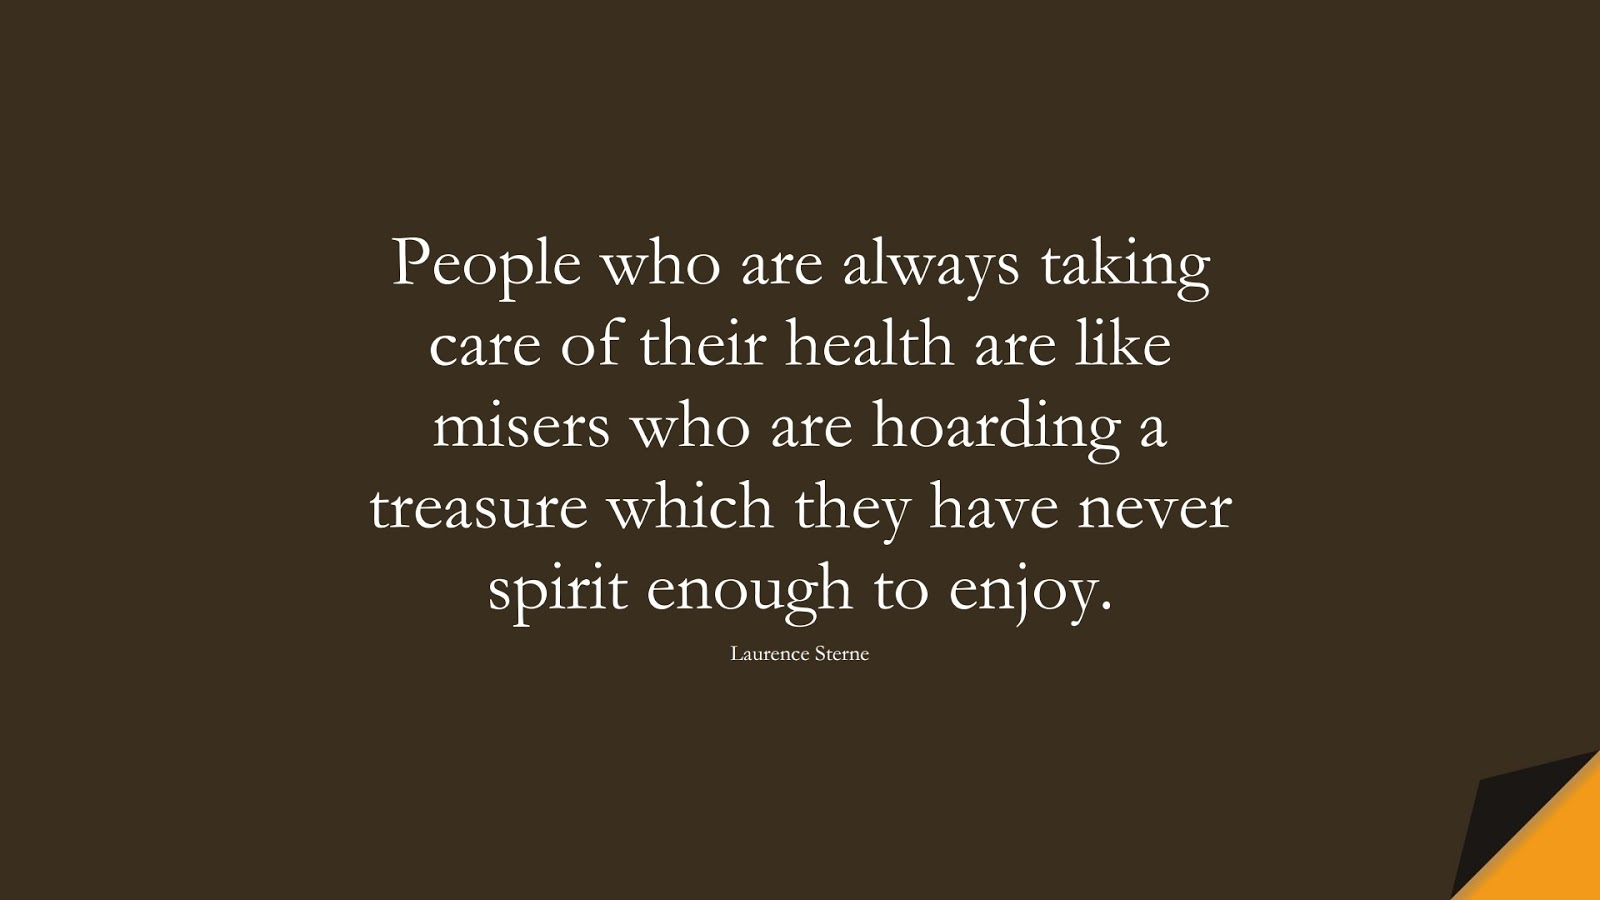 People who are always taking care of their health are like misers who are hoarding a treasure which they have never spirit enough to enjoy. (Laurence Sterne);  #HealthQuotes